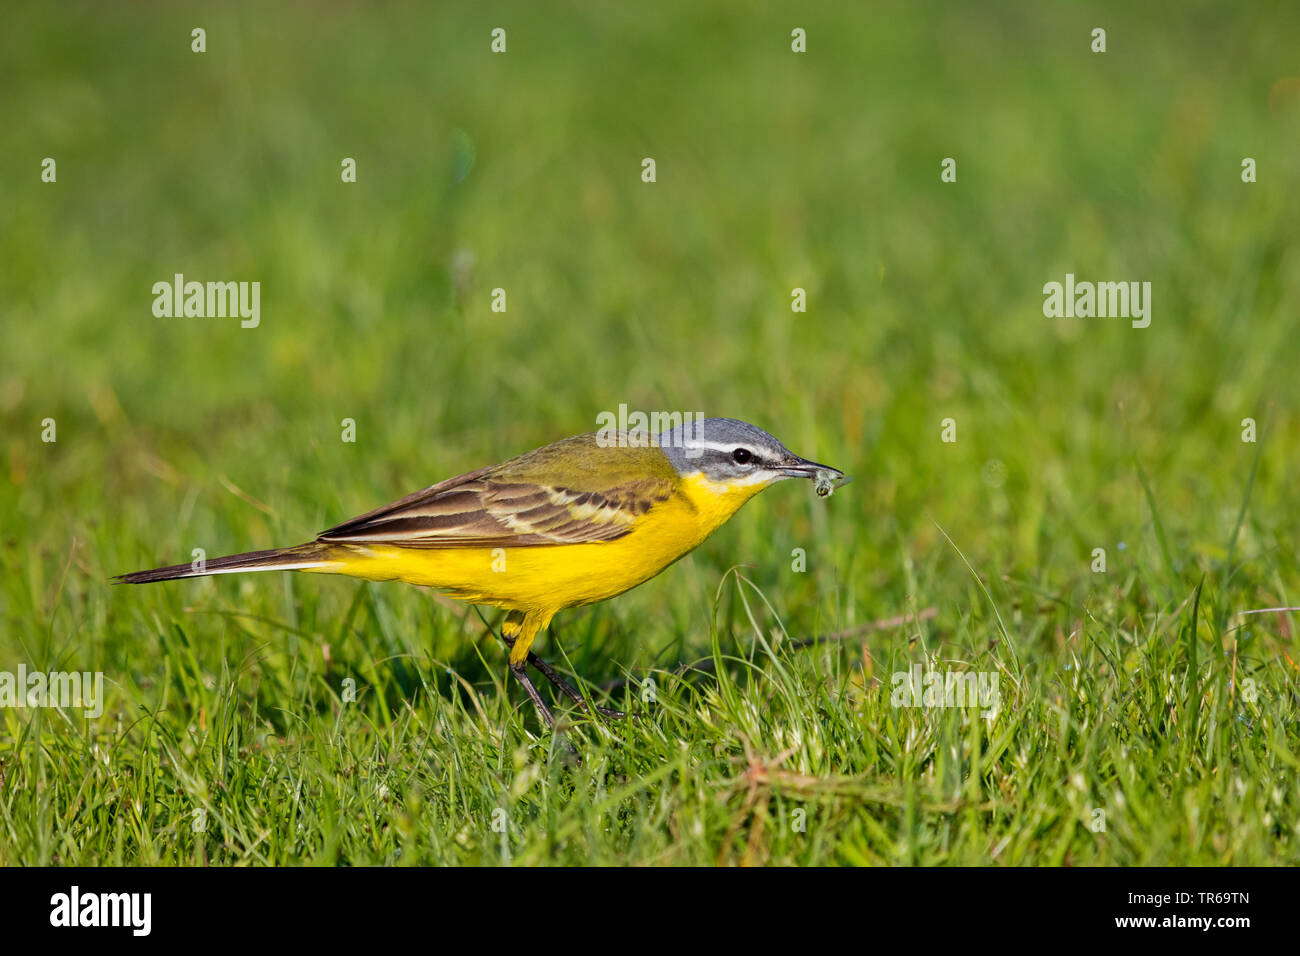 Blue-headed Wagtail, Yellow Wagtail (Motacilla flava flava), with prey in the beak in a meadow, Greece, Lesbos - Stock Image